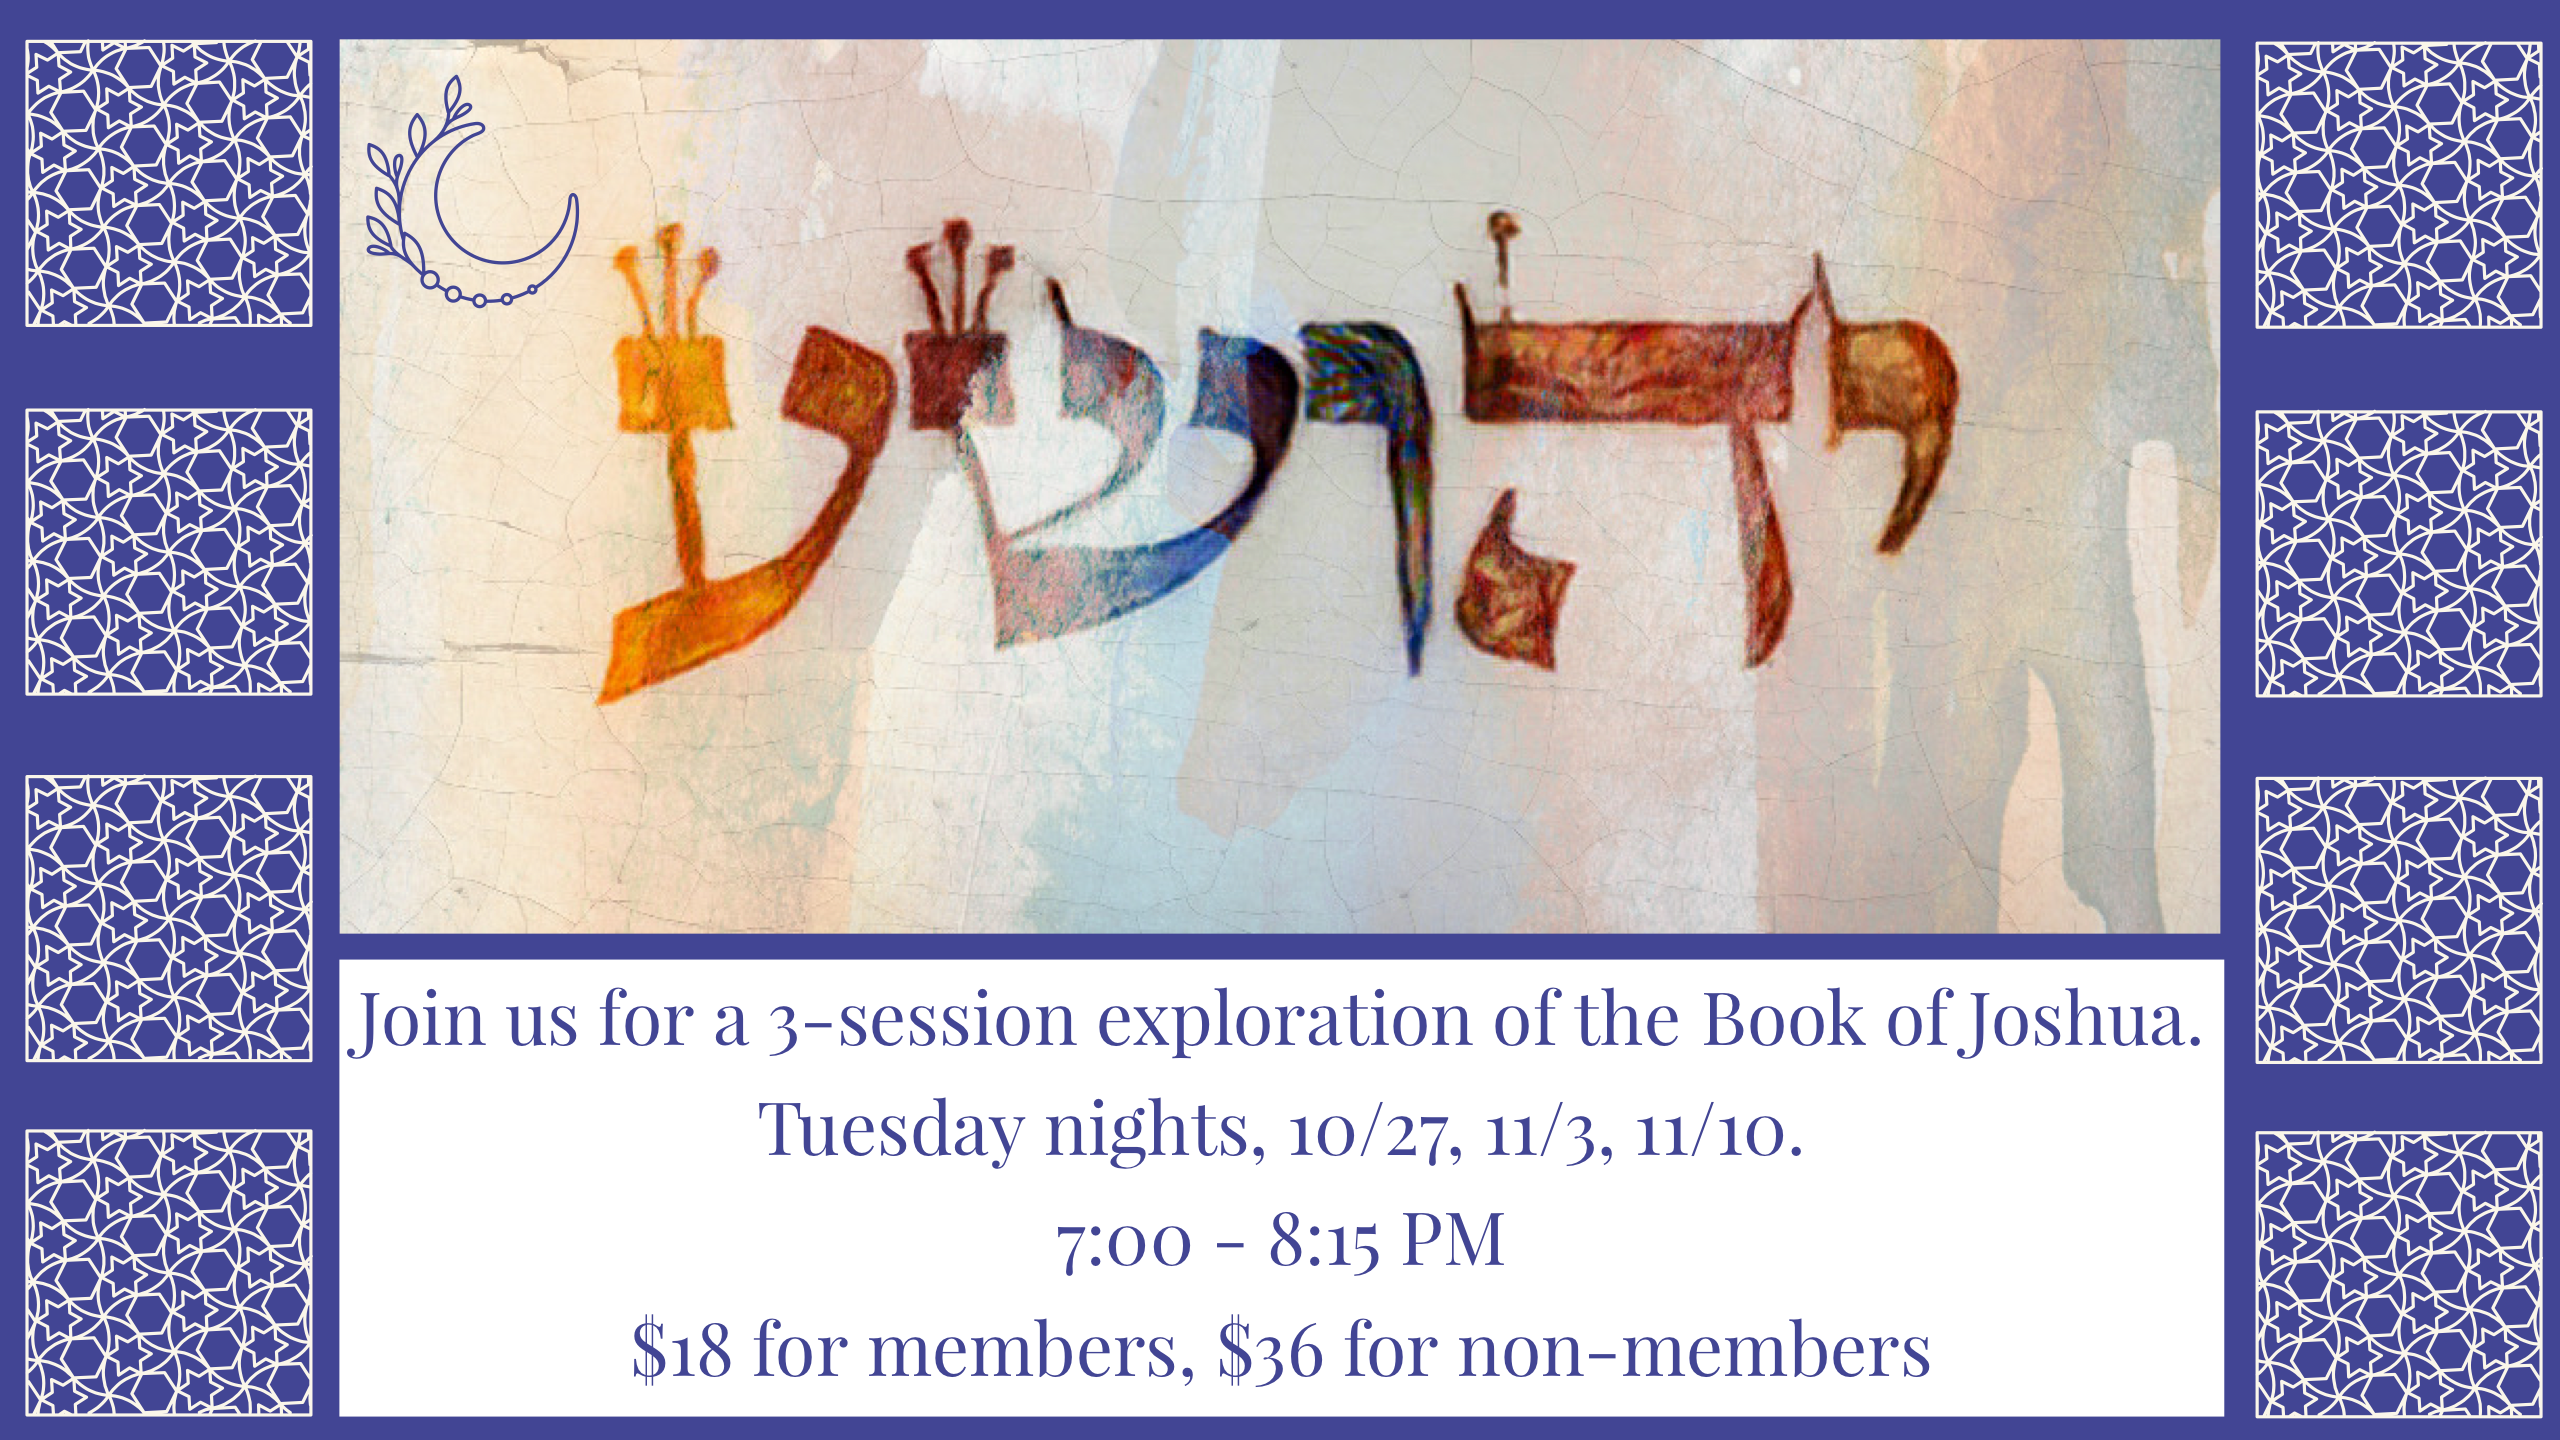 Exploration of the Book of Joshua Tuesday Nights starting 10-27-20 $18 for Members, $36 for Non-Members Register Now!